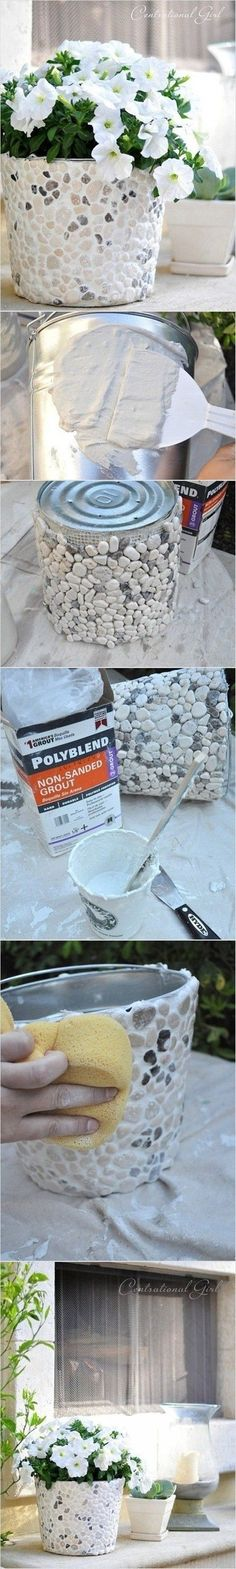 DIY Stone Pots from paint buckets DIY Macetero decorado con piedras Diy Projects To Try, Craft Projects, Mosaic Projects, Fun Crafts, Diy And Crafts, Tin Can Crafts, Creative Crafts, Creation Deco, Ideias Diy